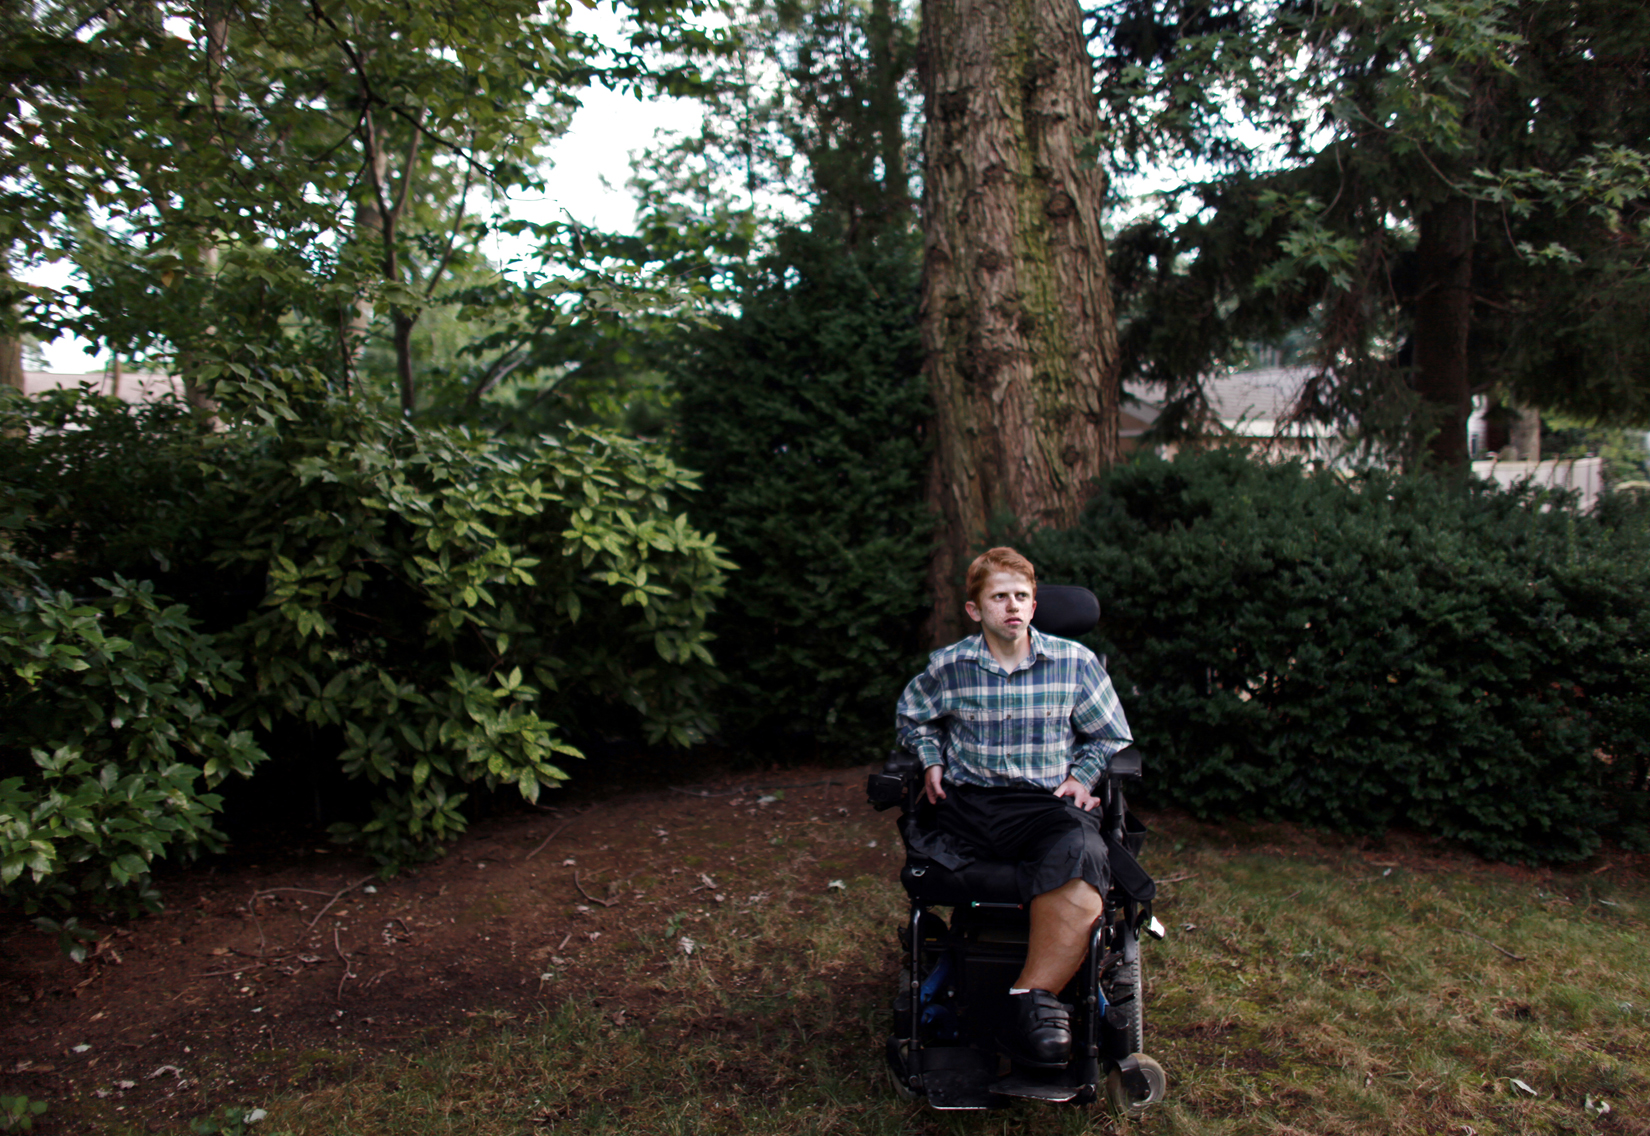 Max Gold, who is bound to a wheelchair after losing his leg to a congenital vascular problem, poses for a portrait in the backyard of his home in Merrick, NY, on August 15, 2013. Max is suing the Smithsonian Air & Space Museum after being denied access to a flight simulator. (For Washington Post)